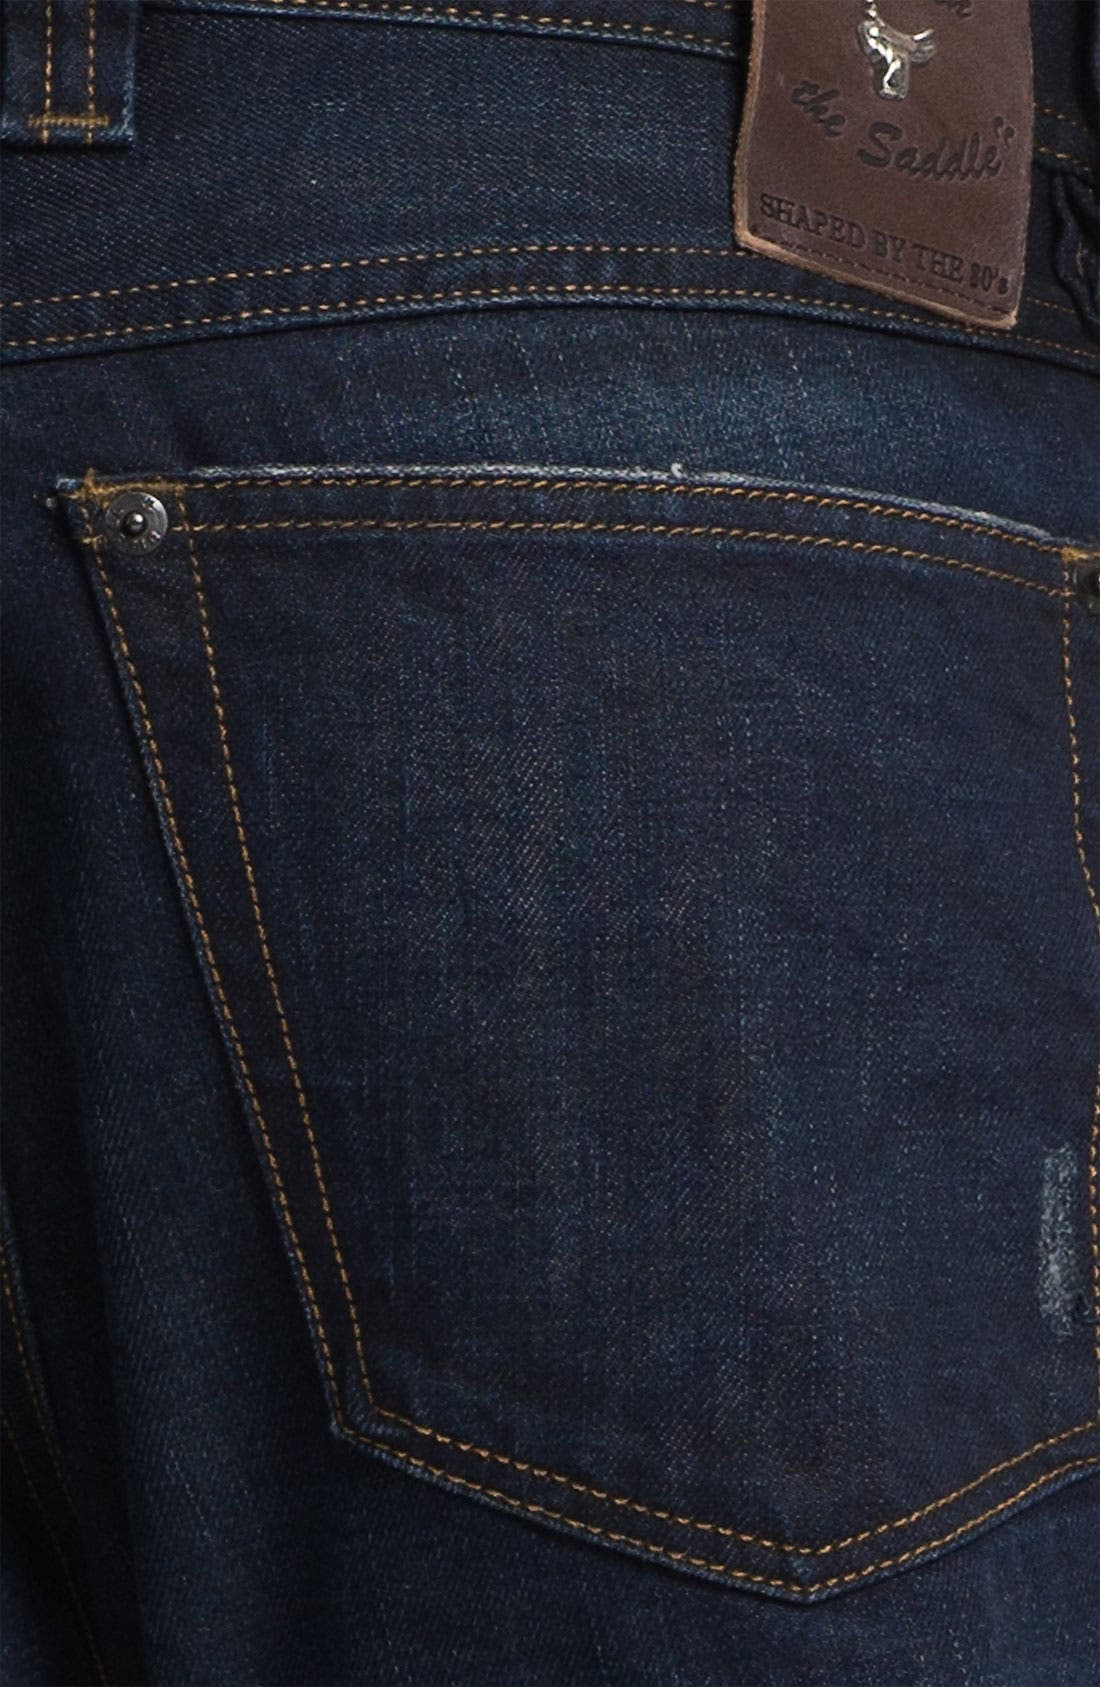 'Back in the Saddle' Relaxed Tapered Leg Jeans,                             Alternate thumbnail 4, color,                             0806X